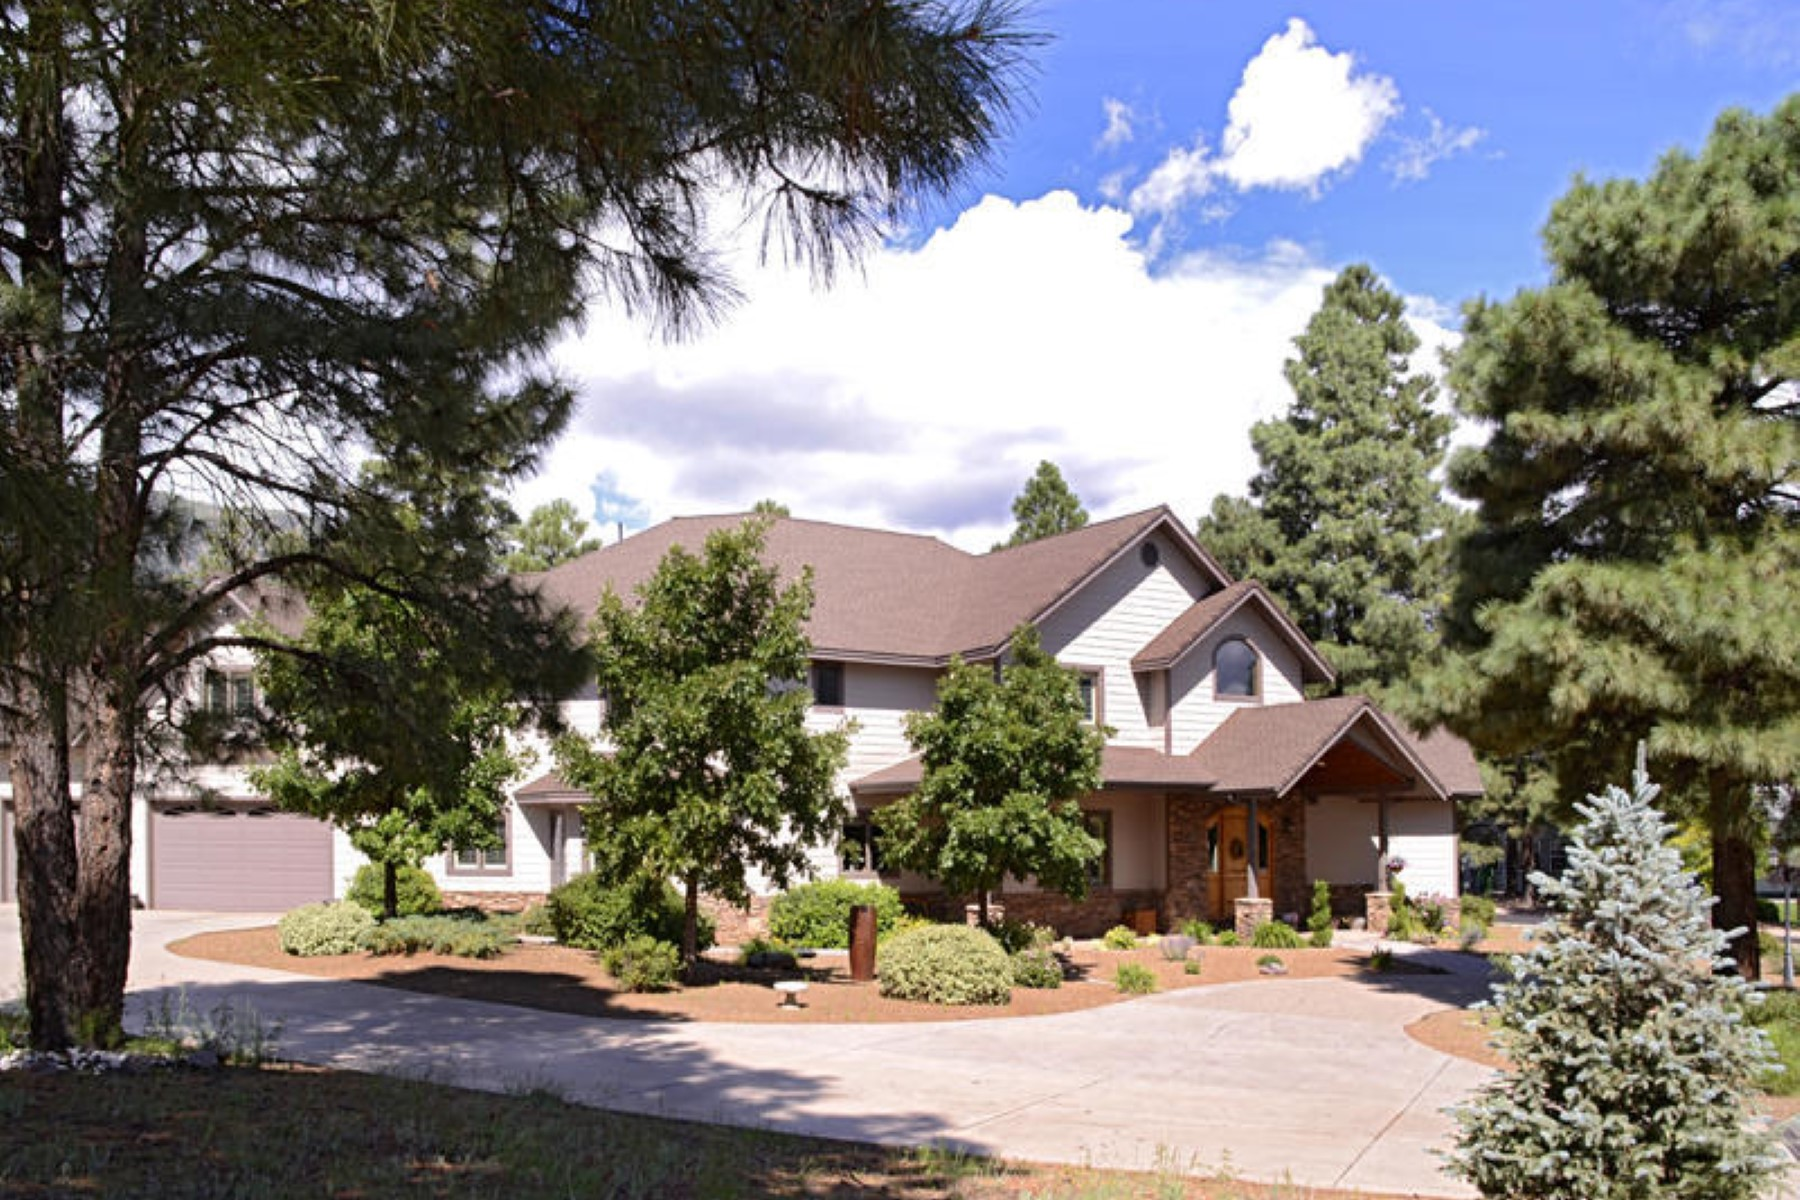 Single Family Home for Sale at Forest Survey Tract 7050 N Oakwood Pines DR Flagstaff, Arizona 86004 United States